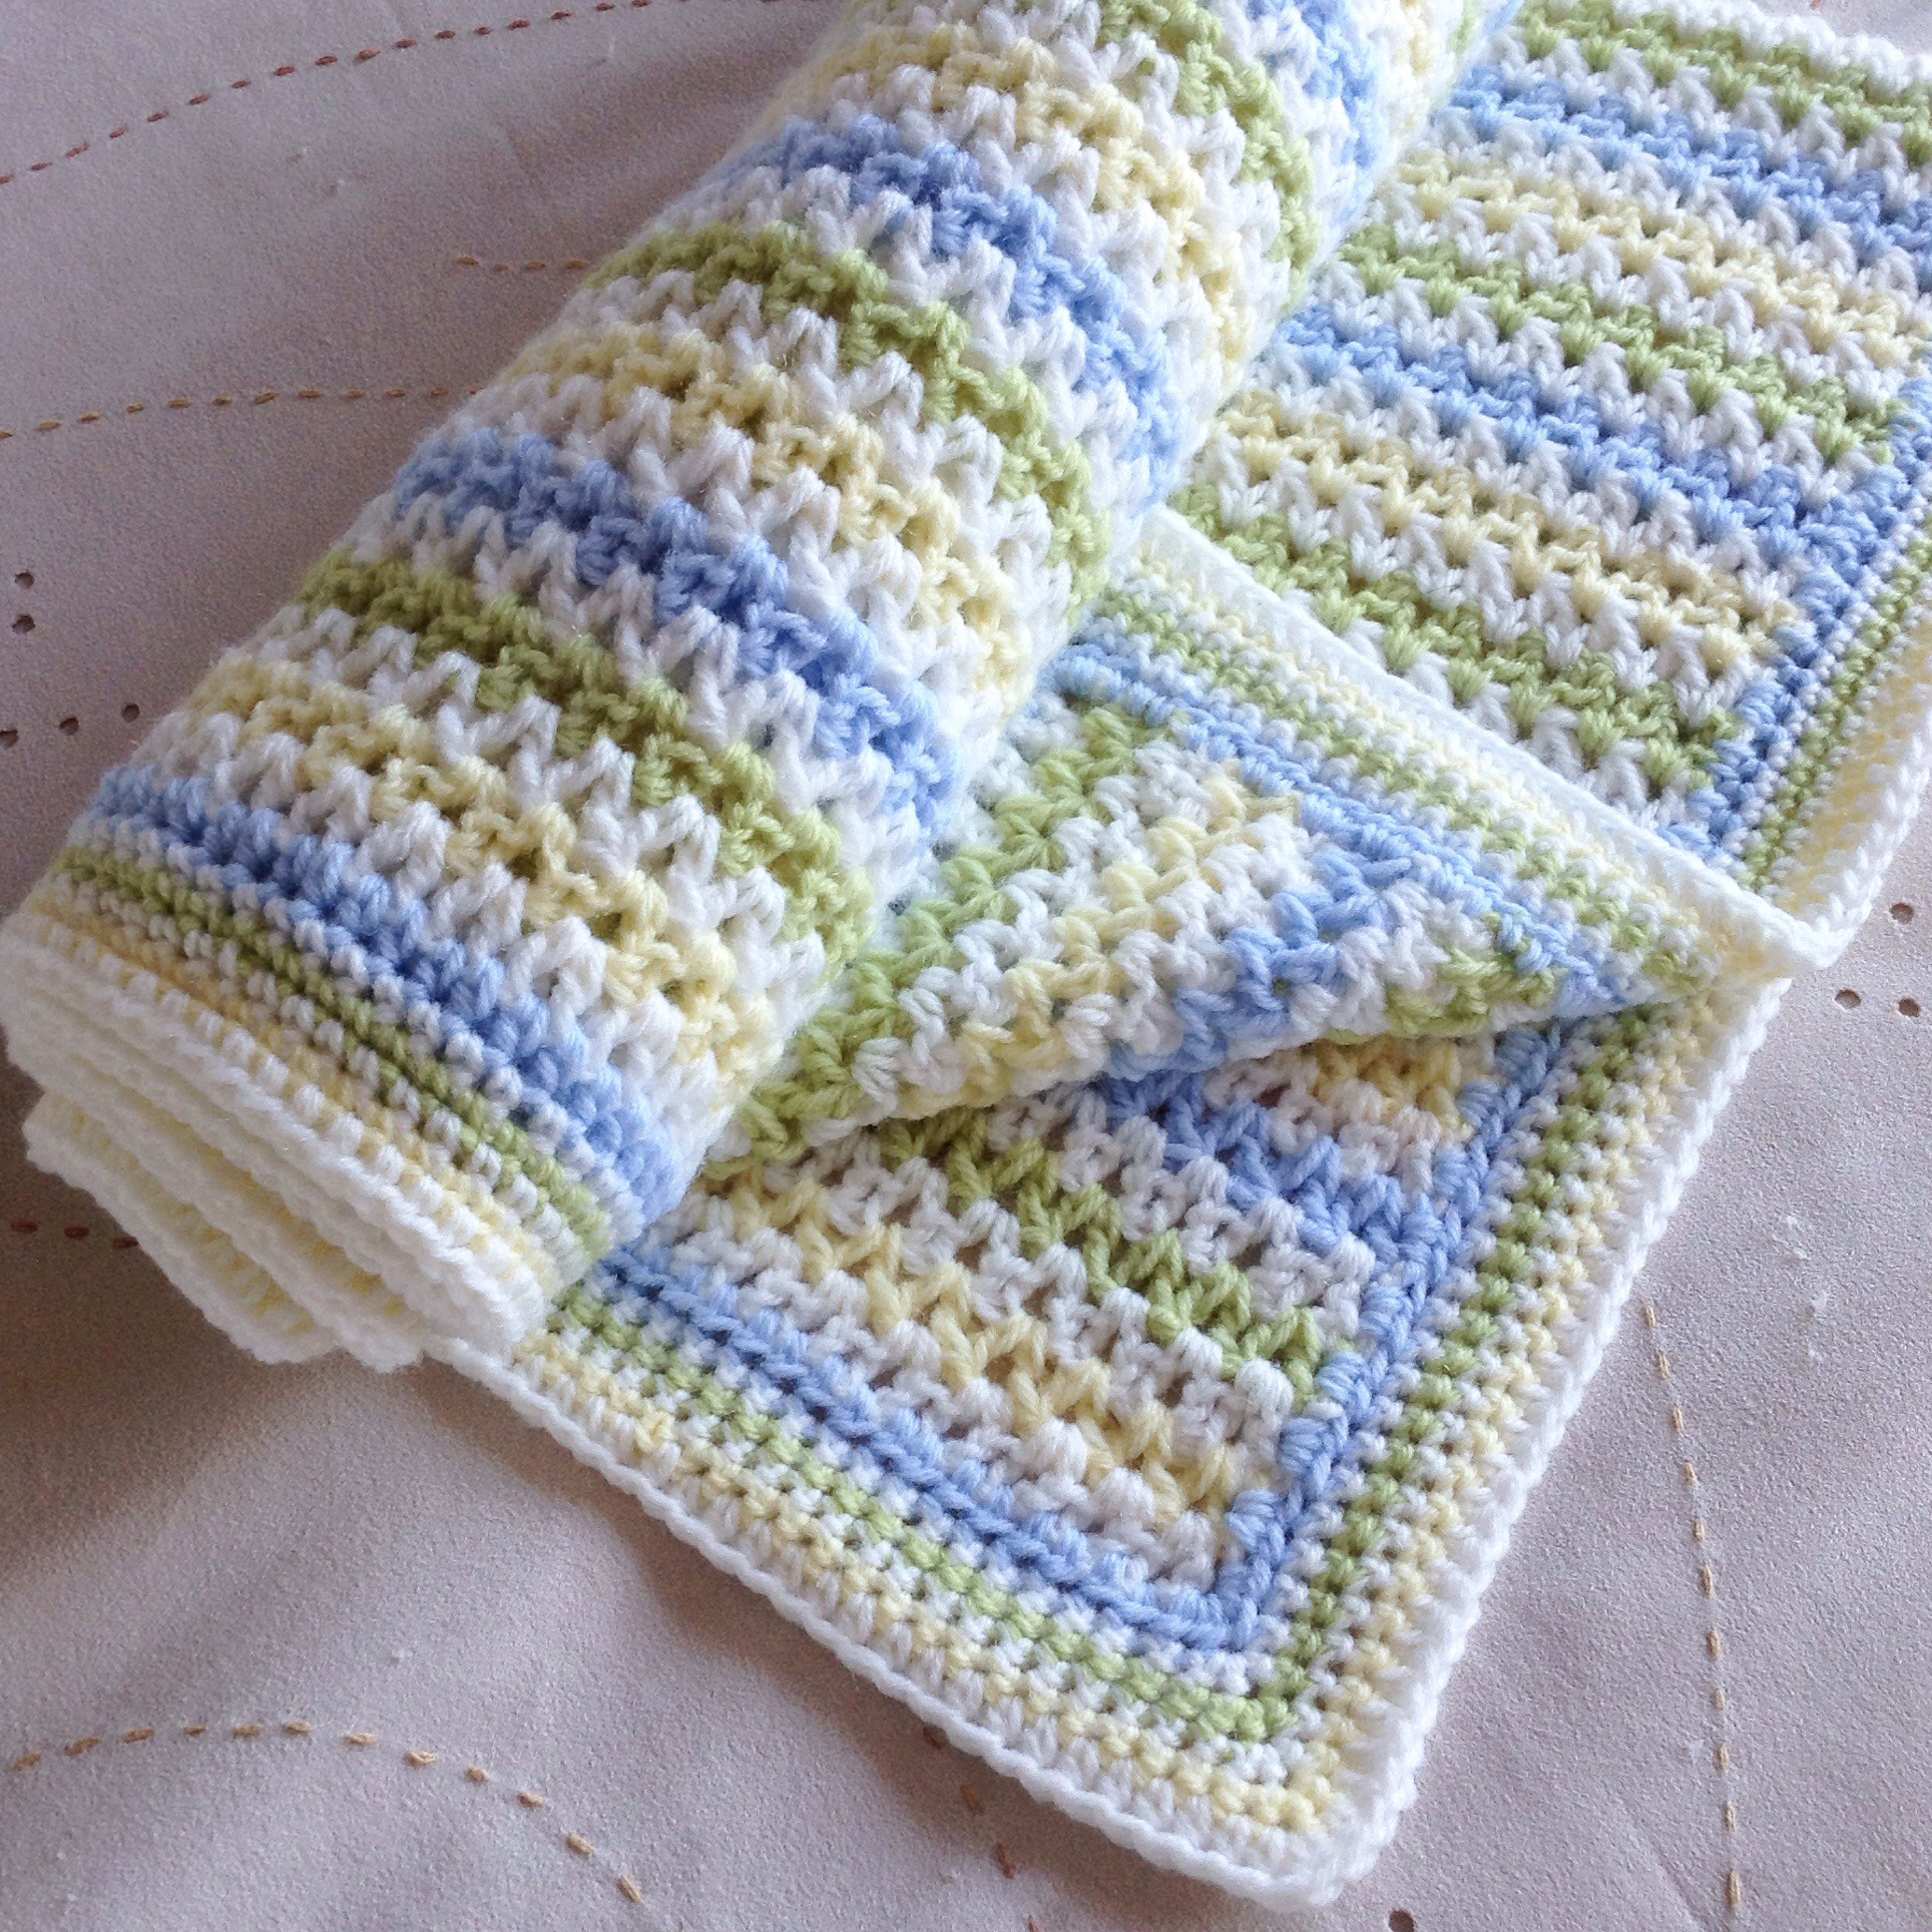 Crochet Quilts Inspirational Crochet Blankets – Patternpiper Of Unique 45 Pics Crochet Quilts